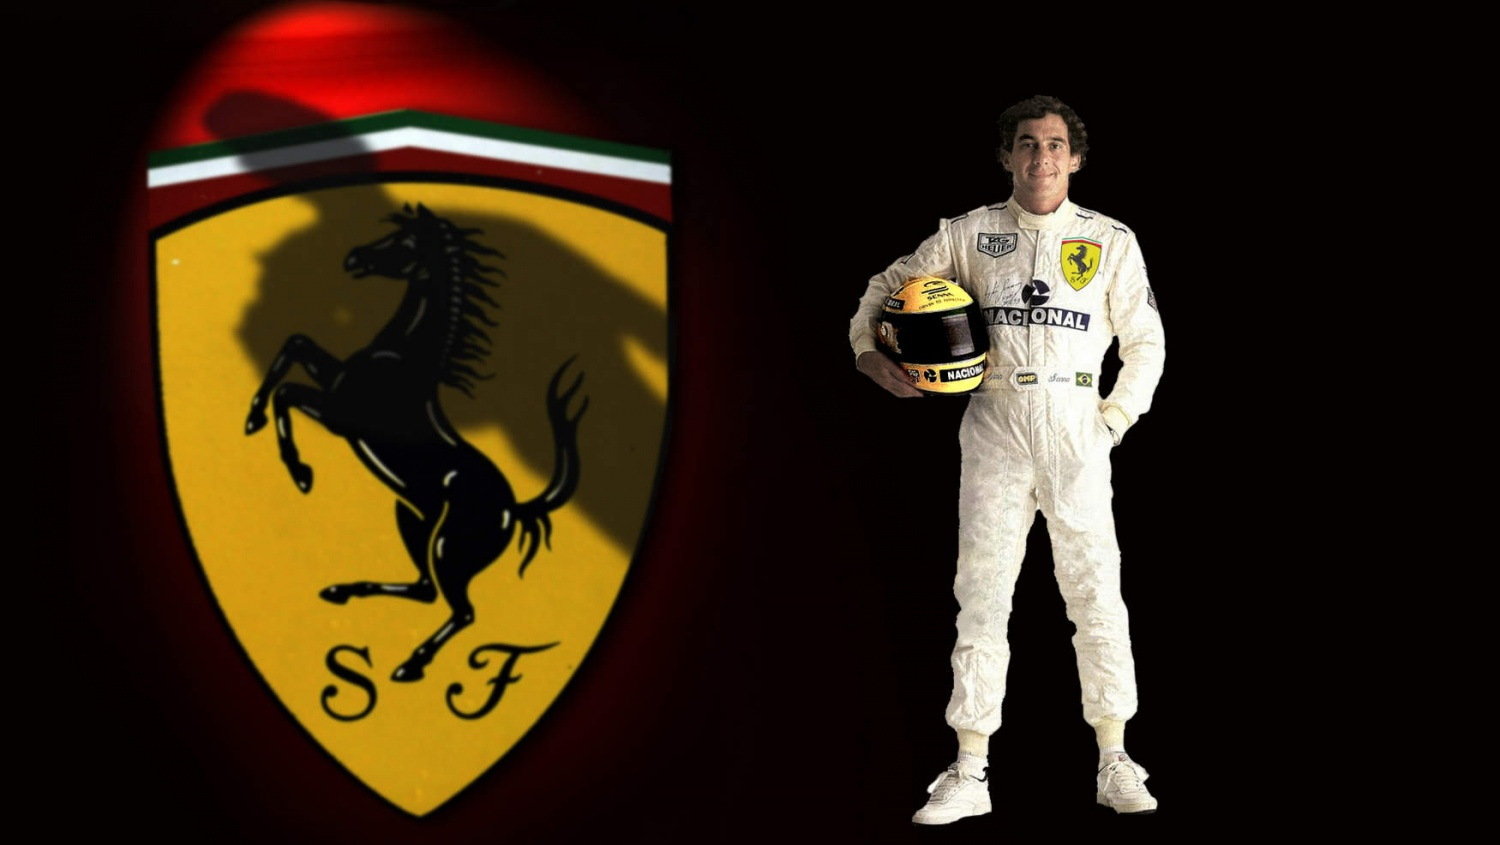 Luca di Montezemolo: Ayrton wanted to come to Ferrari and I wanted him in the team